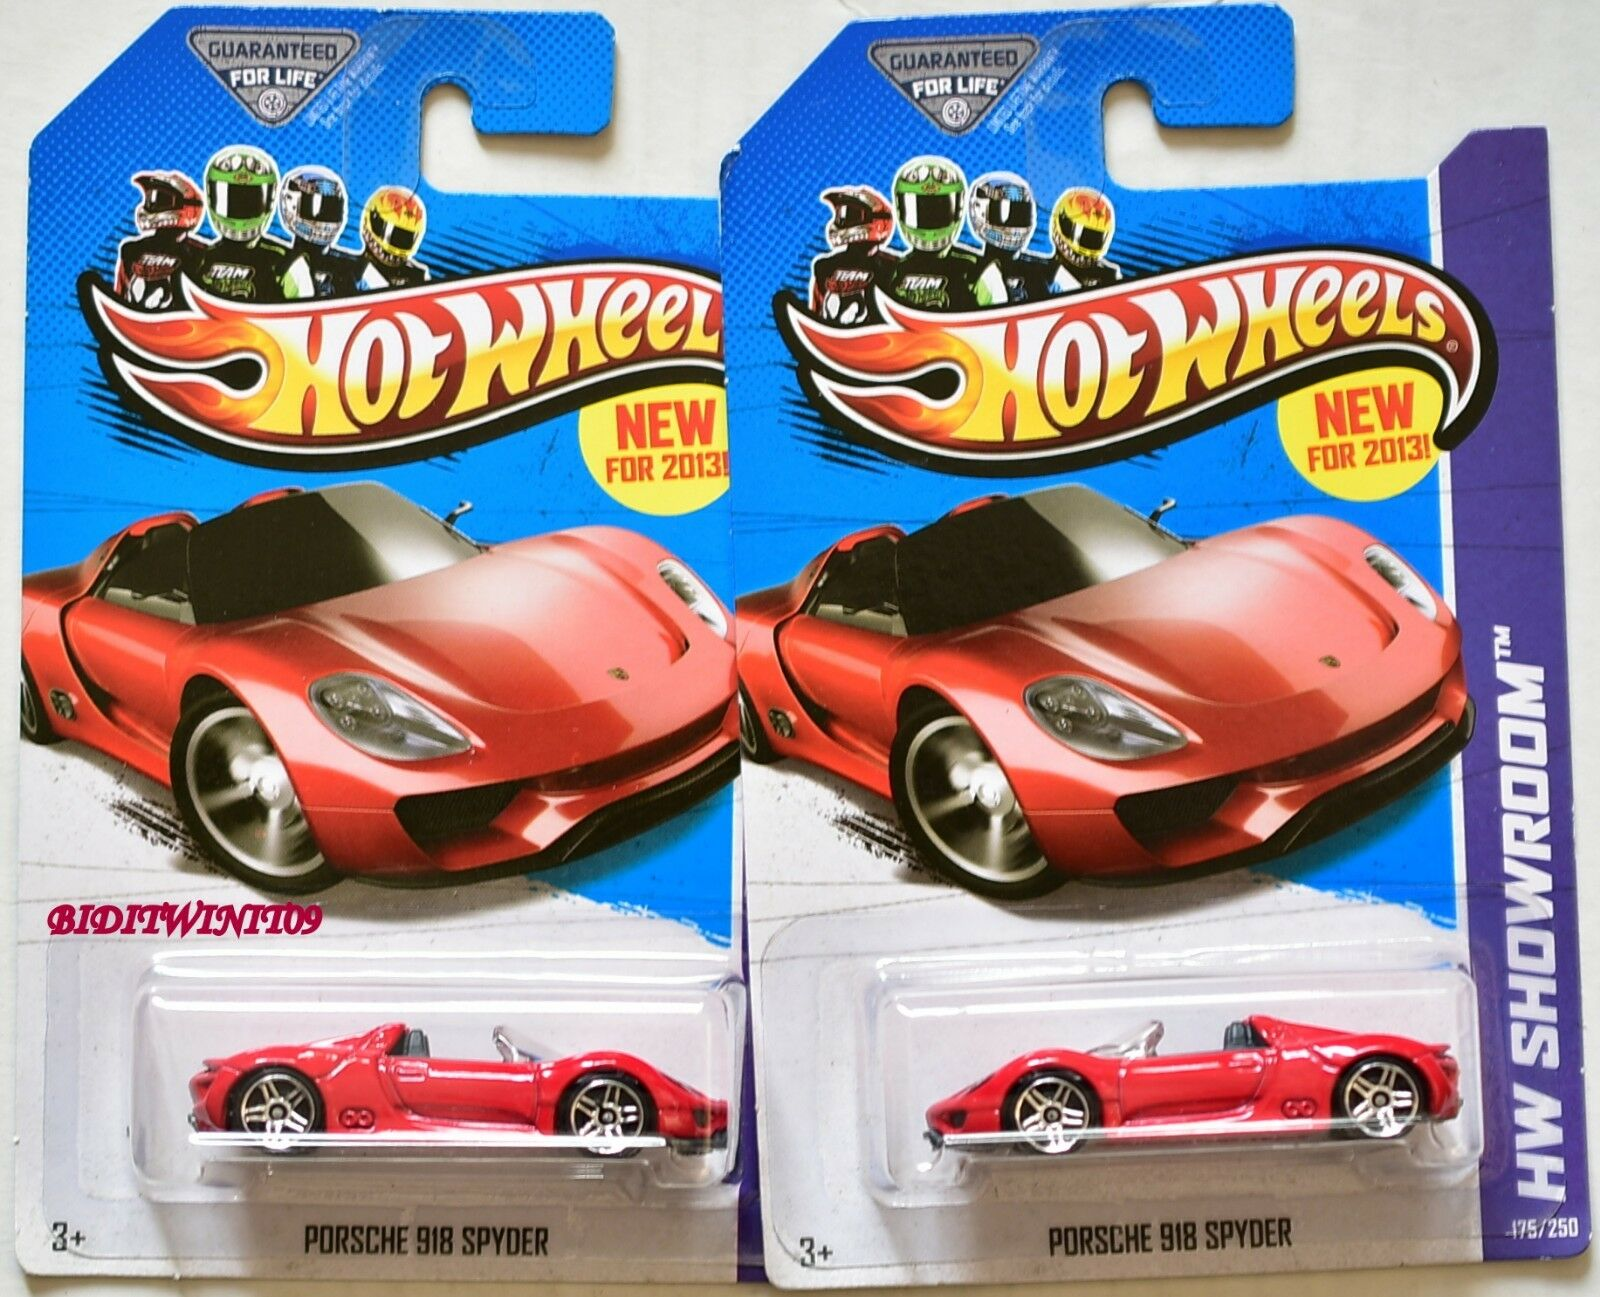 HOT WHEELS 2013 HW SHOWROOM PORSCHE 918 SPYDER VARIATION W+